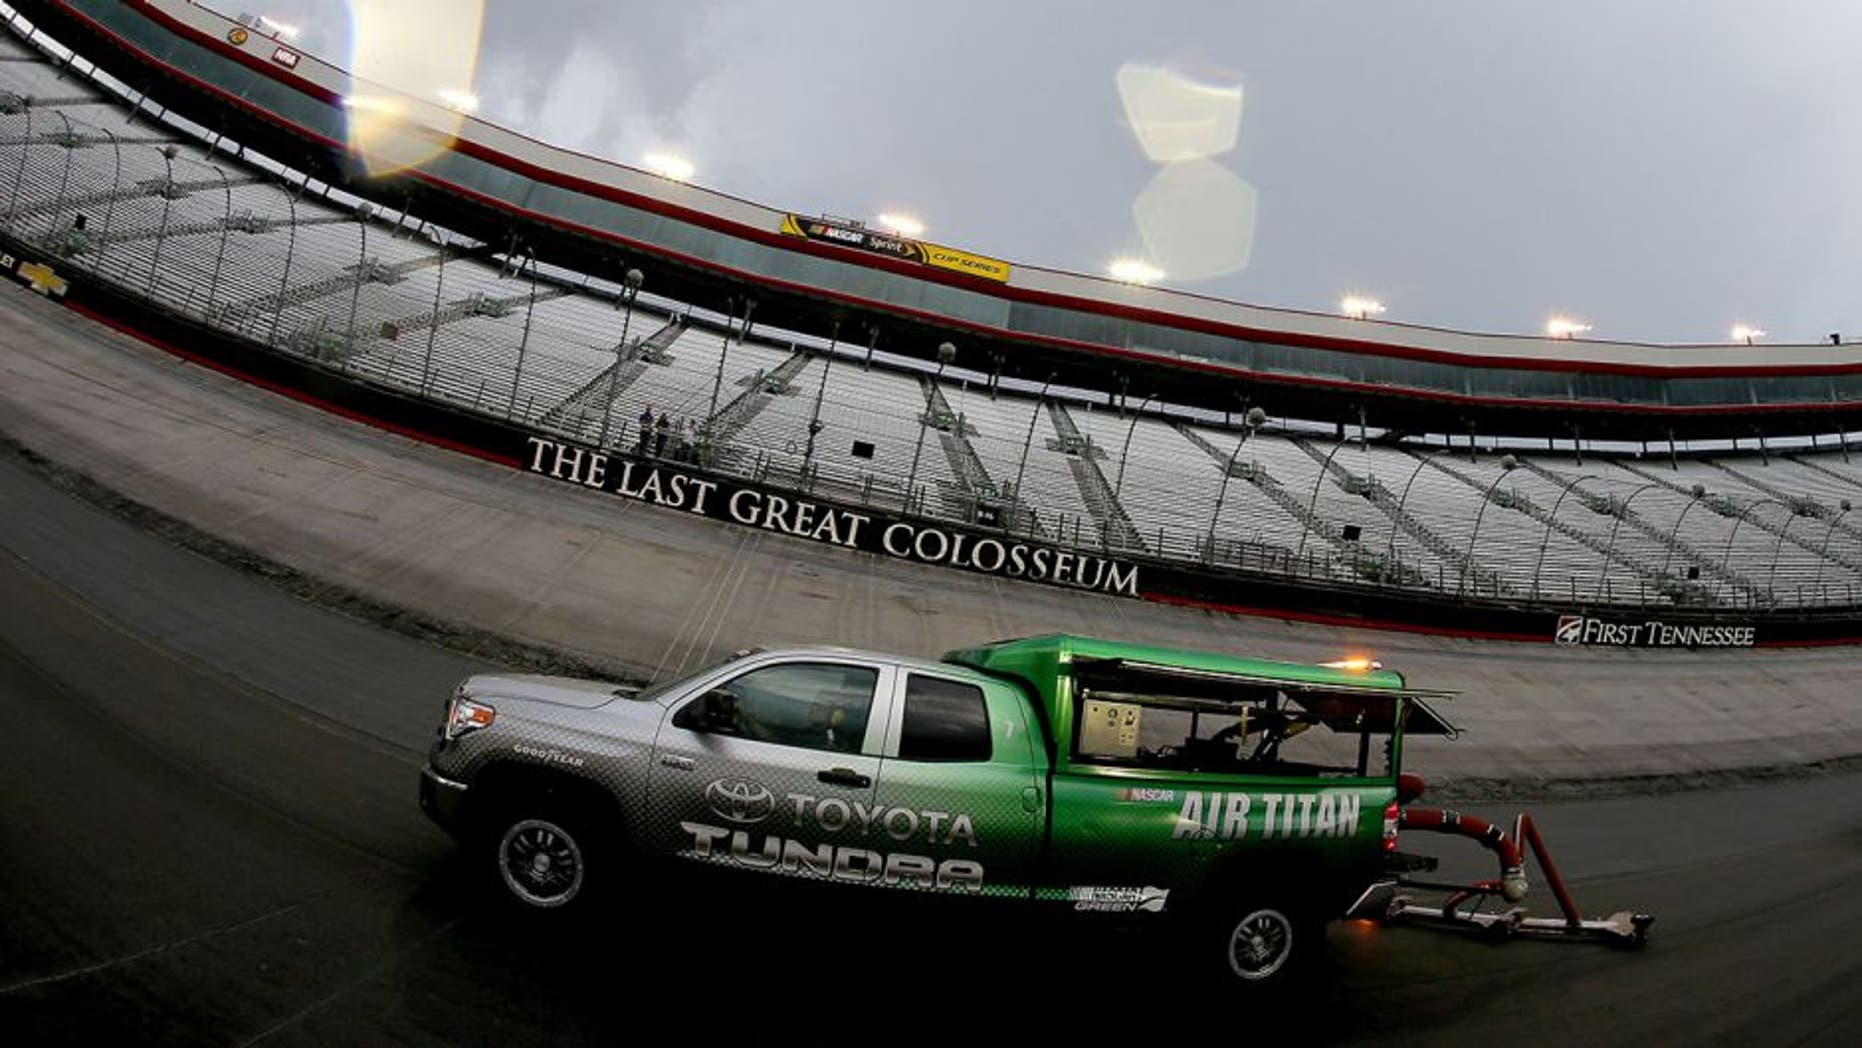 BRISTOL, TN - AUGUST 17: An Air Titan dries the racing surface during a rain delay for the NASCAR Whelen Modified Tours Bush's Beans 150 at Bristol Motor Speedway on August 17, 2016 in Bristol, Tennessee. (Photo by Sean Gardner/NASCAR via Getty Images)